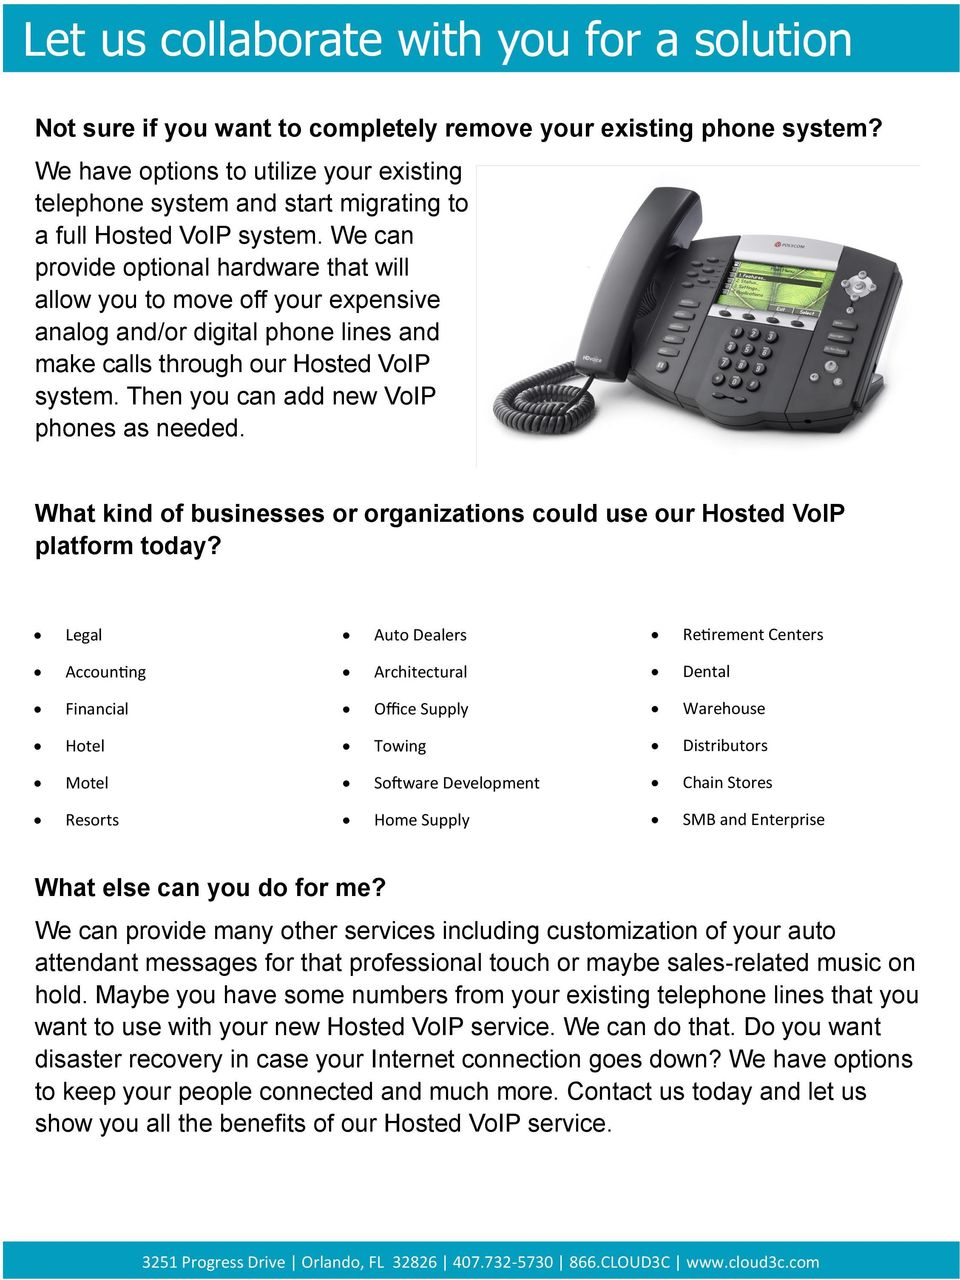 We can provide optional hardware that will allow you to move off your expensive analog and/or digital phone lines and make calls through our Hosted VoIP system.